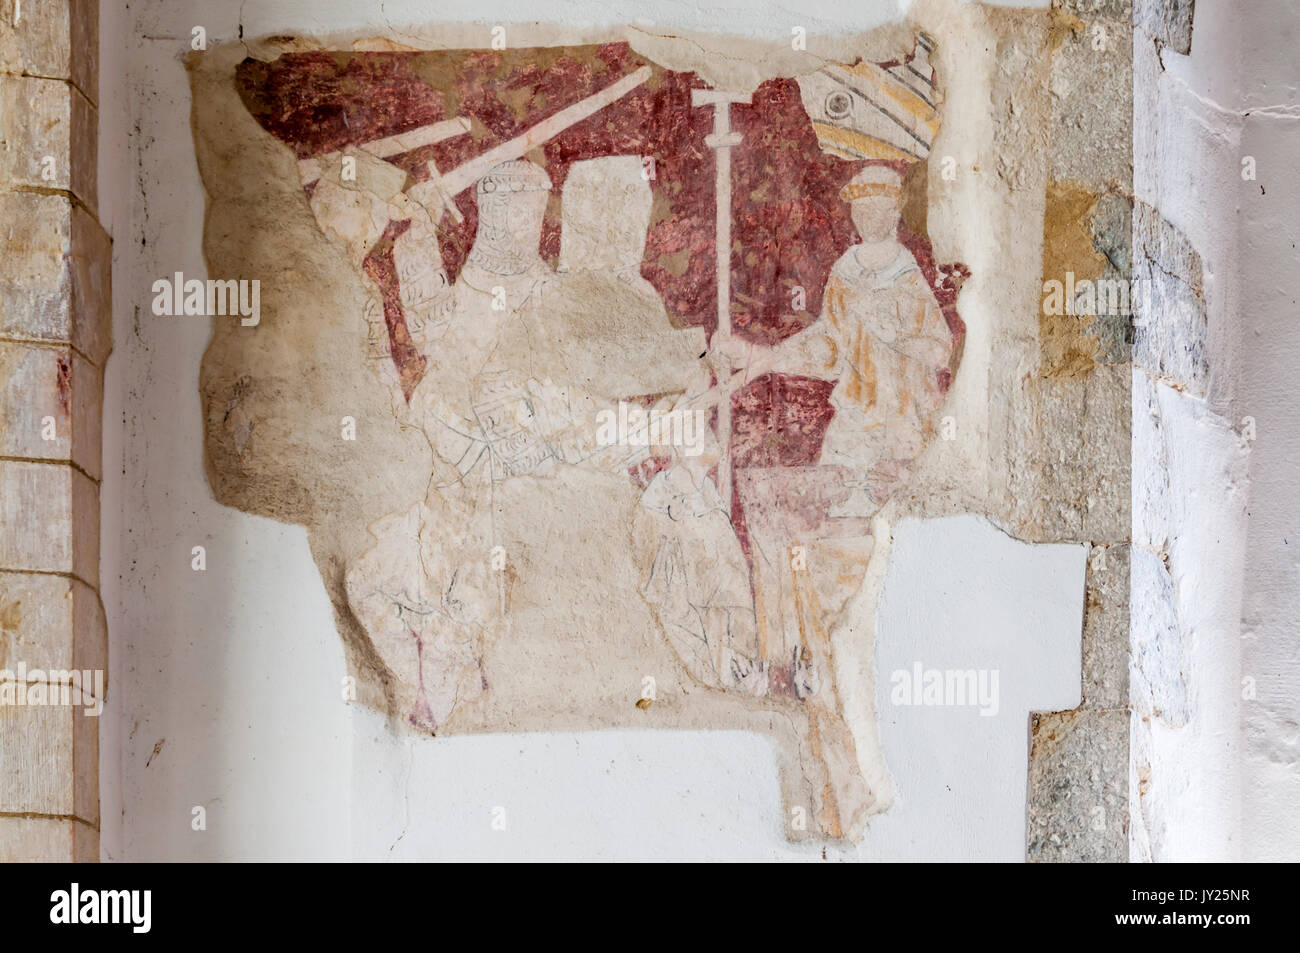 A fragment of a medieval wall painting in Brookland church on Romney Marsh showing the murder of Thomas a Becket - Stock Image